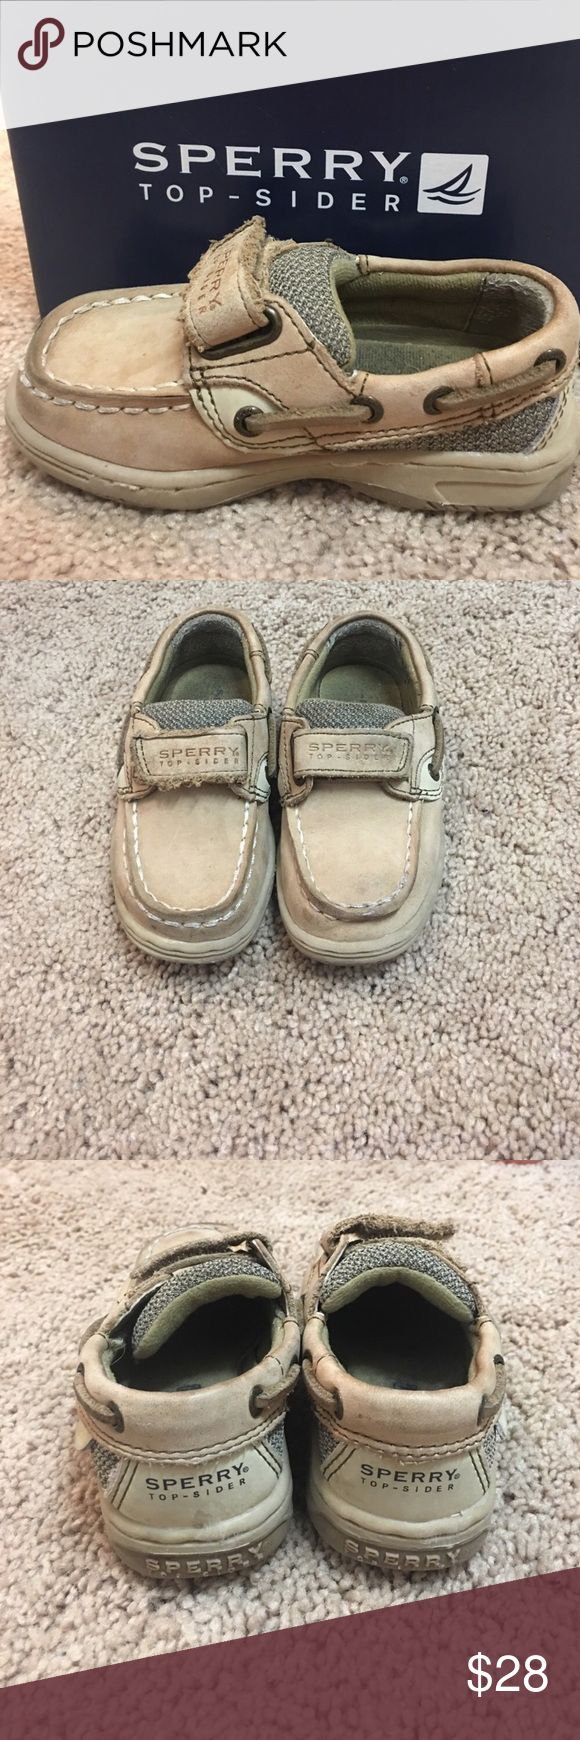 Selling this Sperry Top-Sider toddler shoes on Poshmark! My username is: cassaid. #shopmycloset #poshmark #fashion #shopping #style #forsale #Sperry Top-Sider #Other